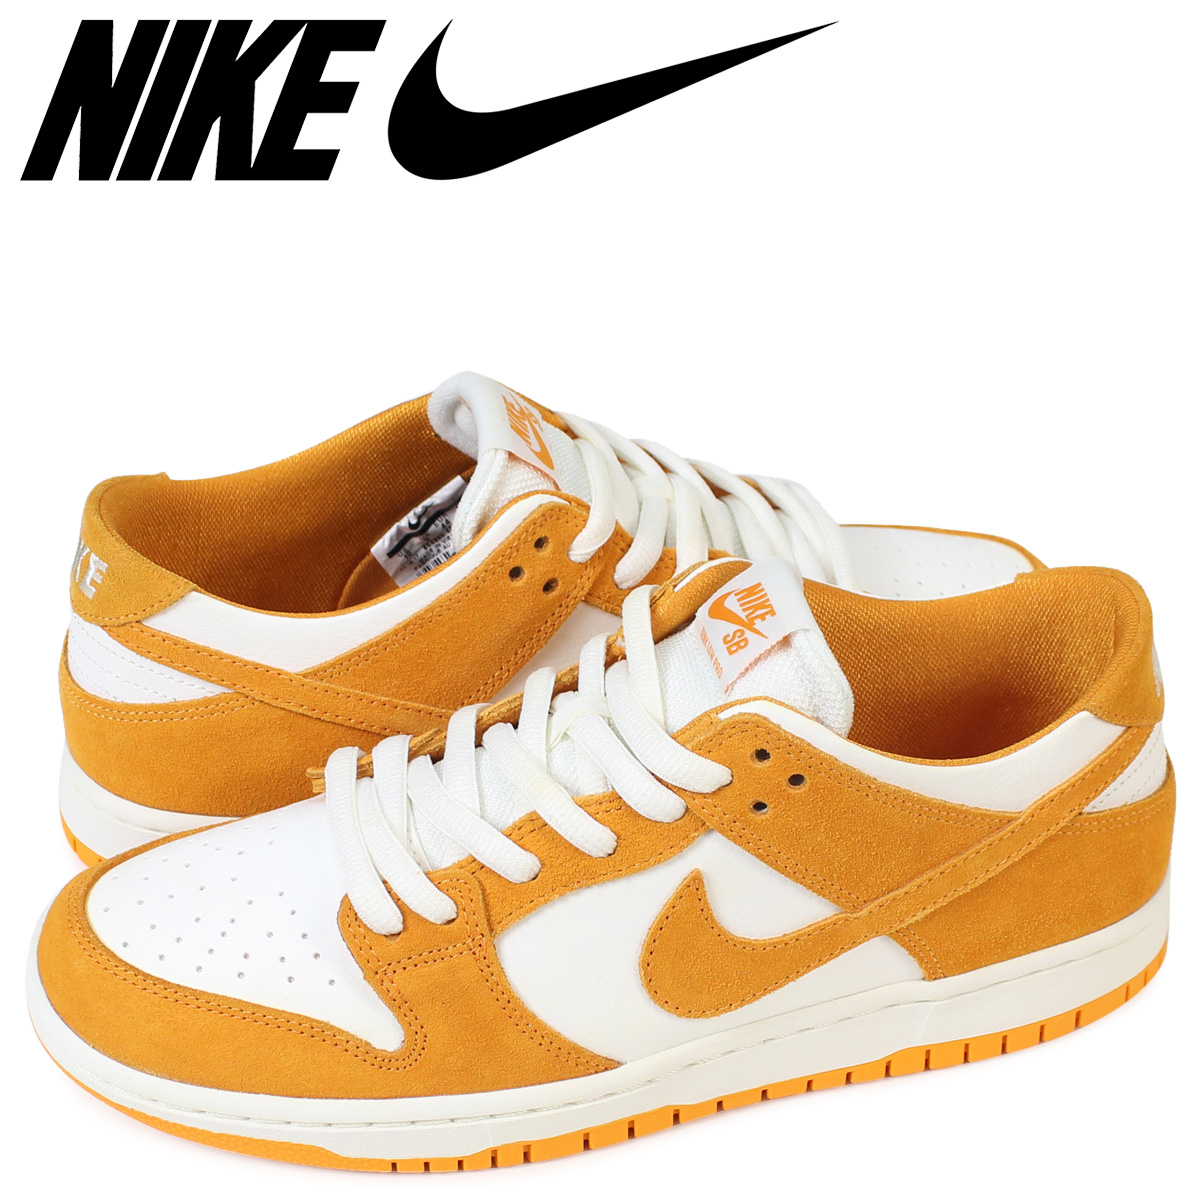 5ee5a289cd93c Nike NIKE SB dunk low sneakers ZOOM DUNK LOW PRO 854,866-881 men's shoes  orange ...